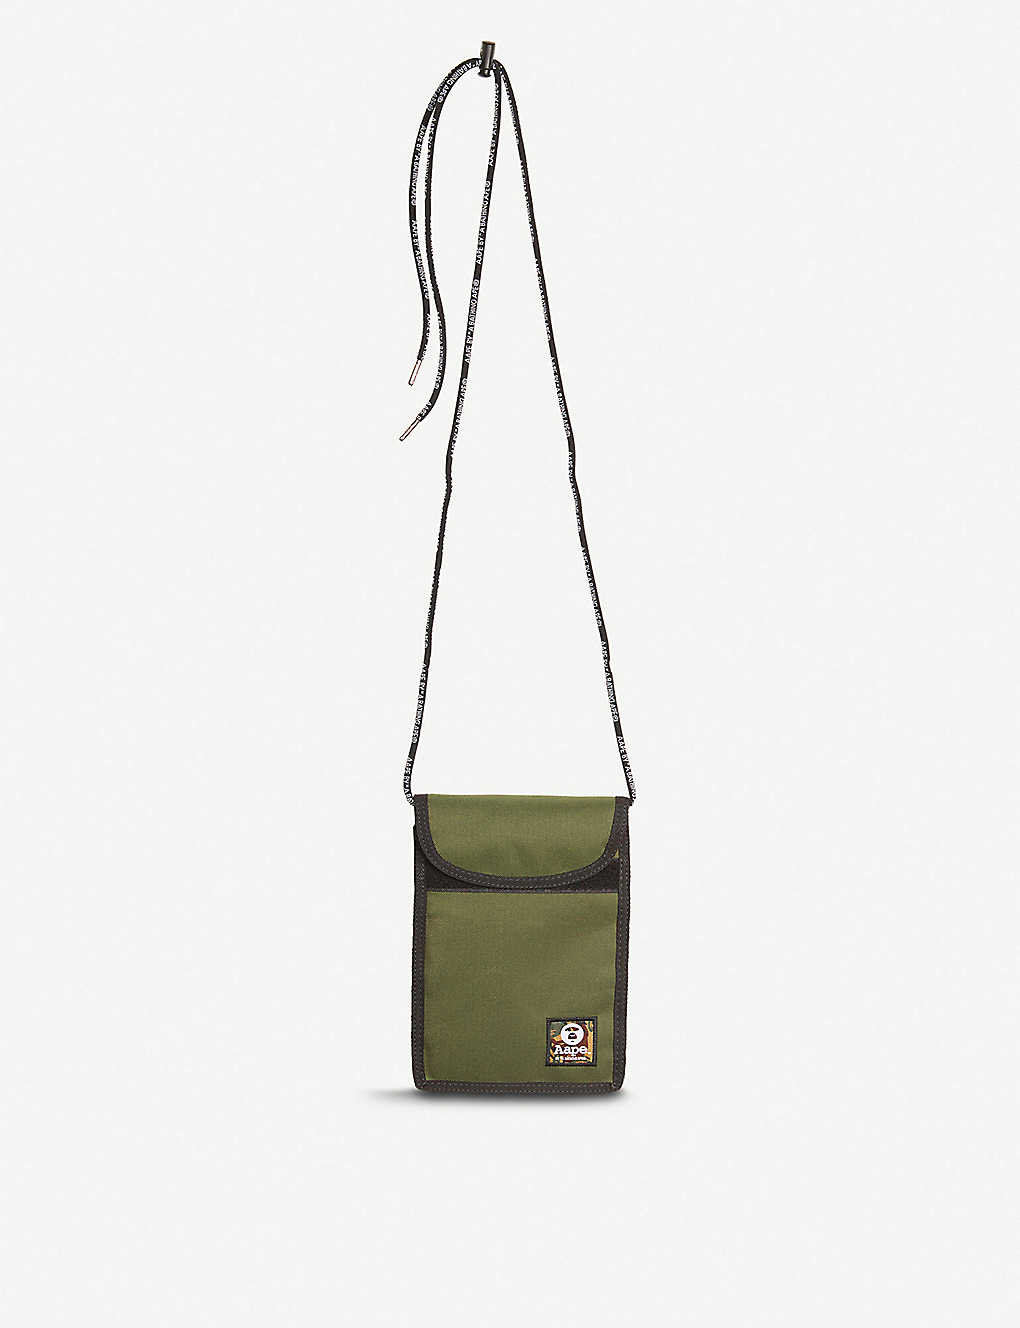 78cdb1022f72b AAPE - Cross-body bag | Selfridges.com